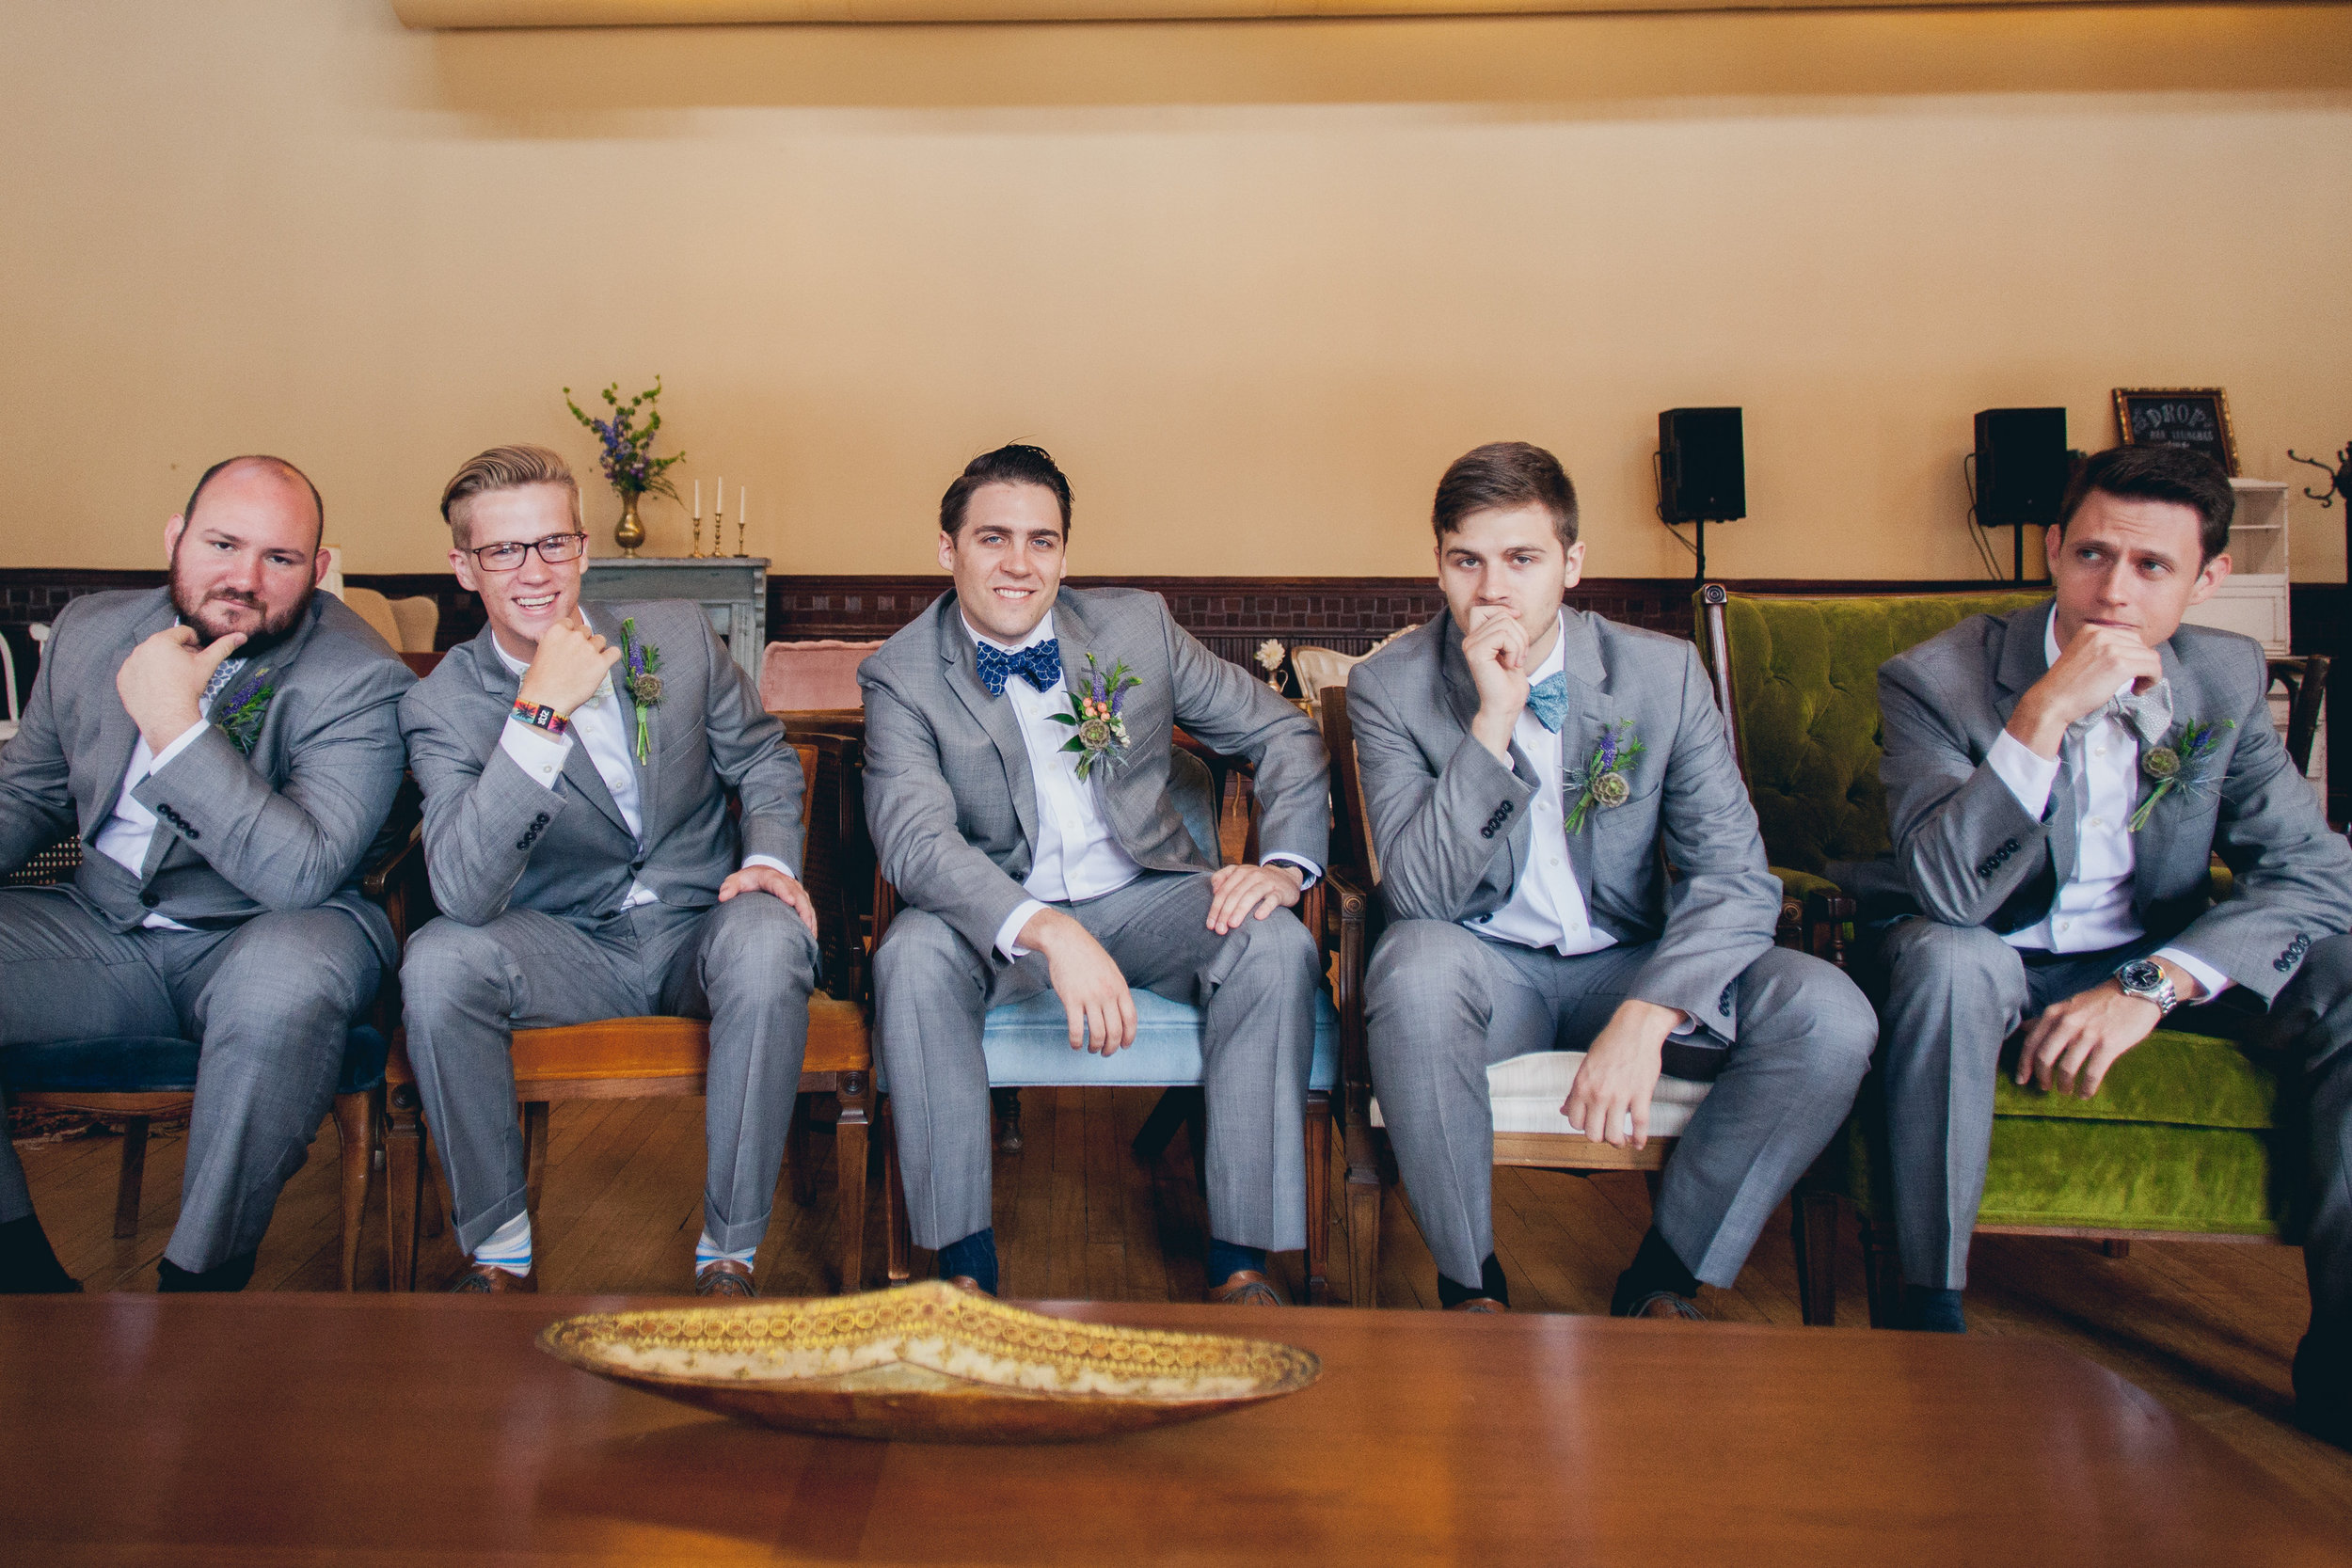 Handsome groom and groomsmen in our mod chair collection.